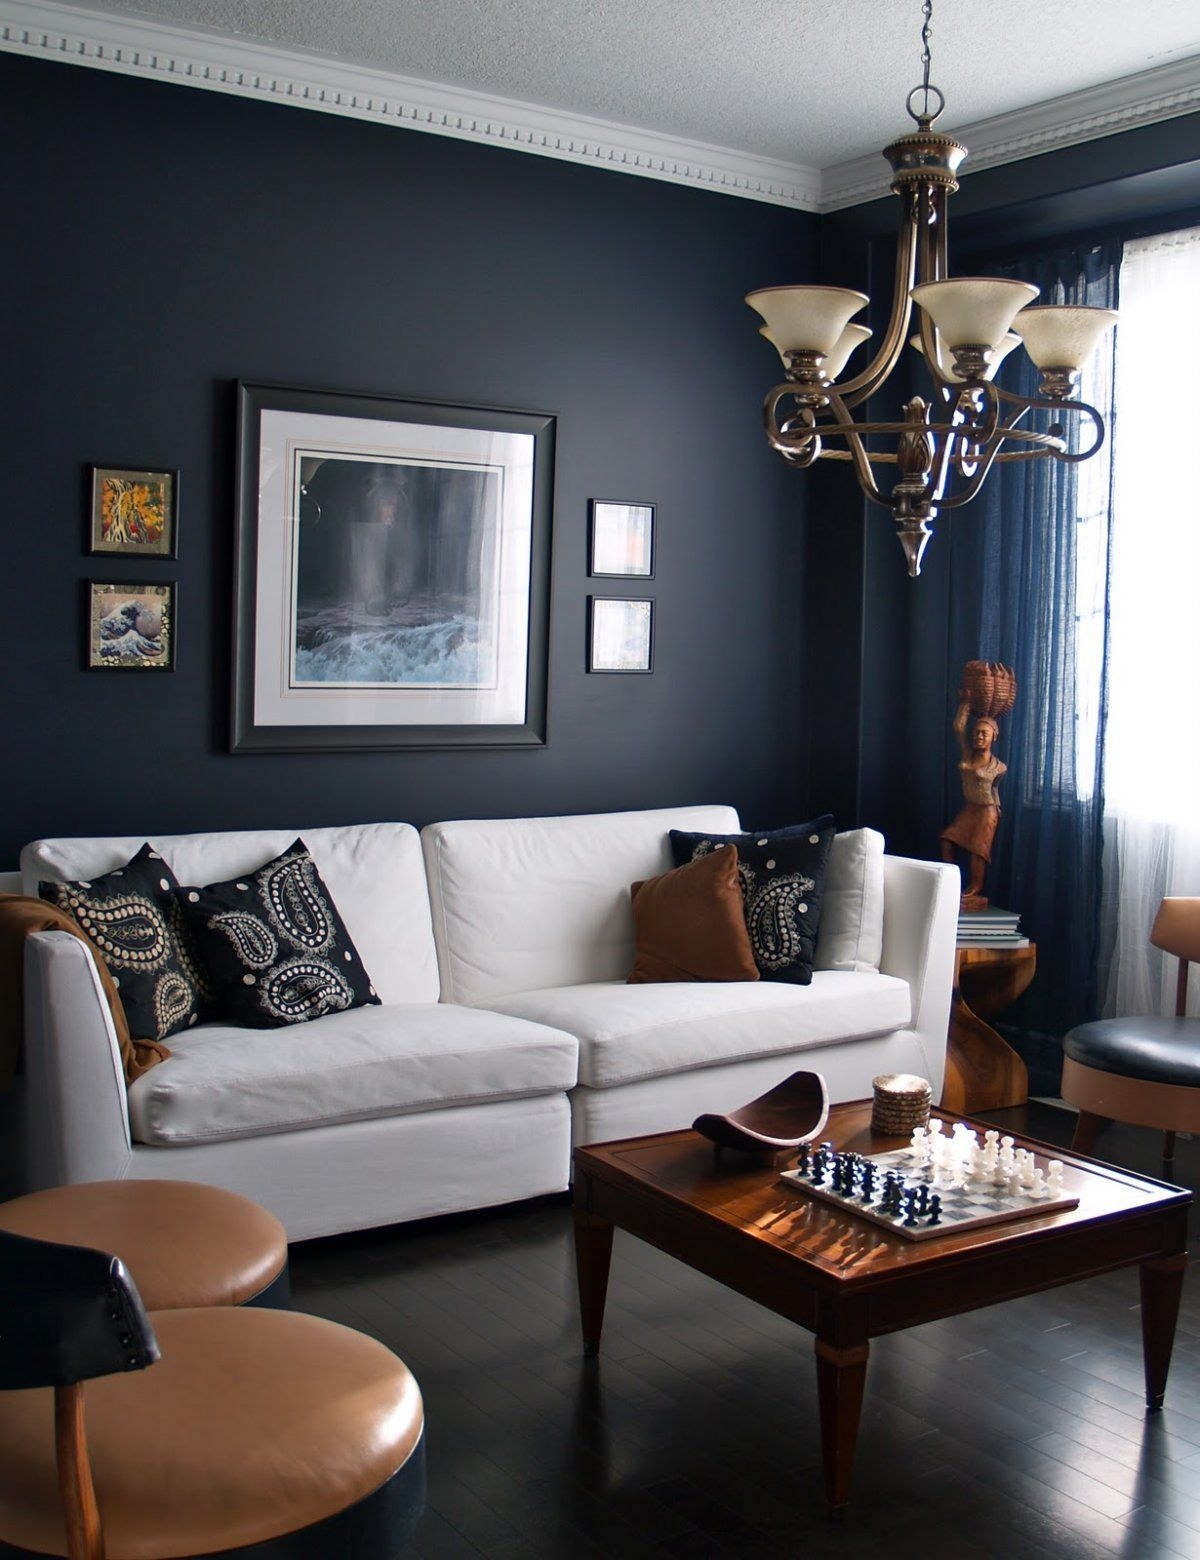 15 beautiful dark blue wall design ideas living room designs